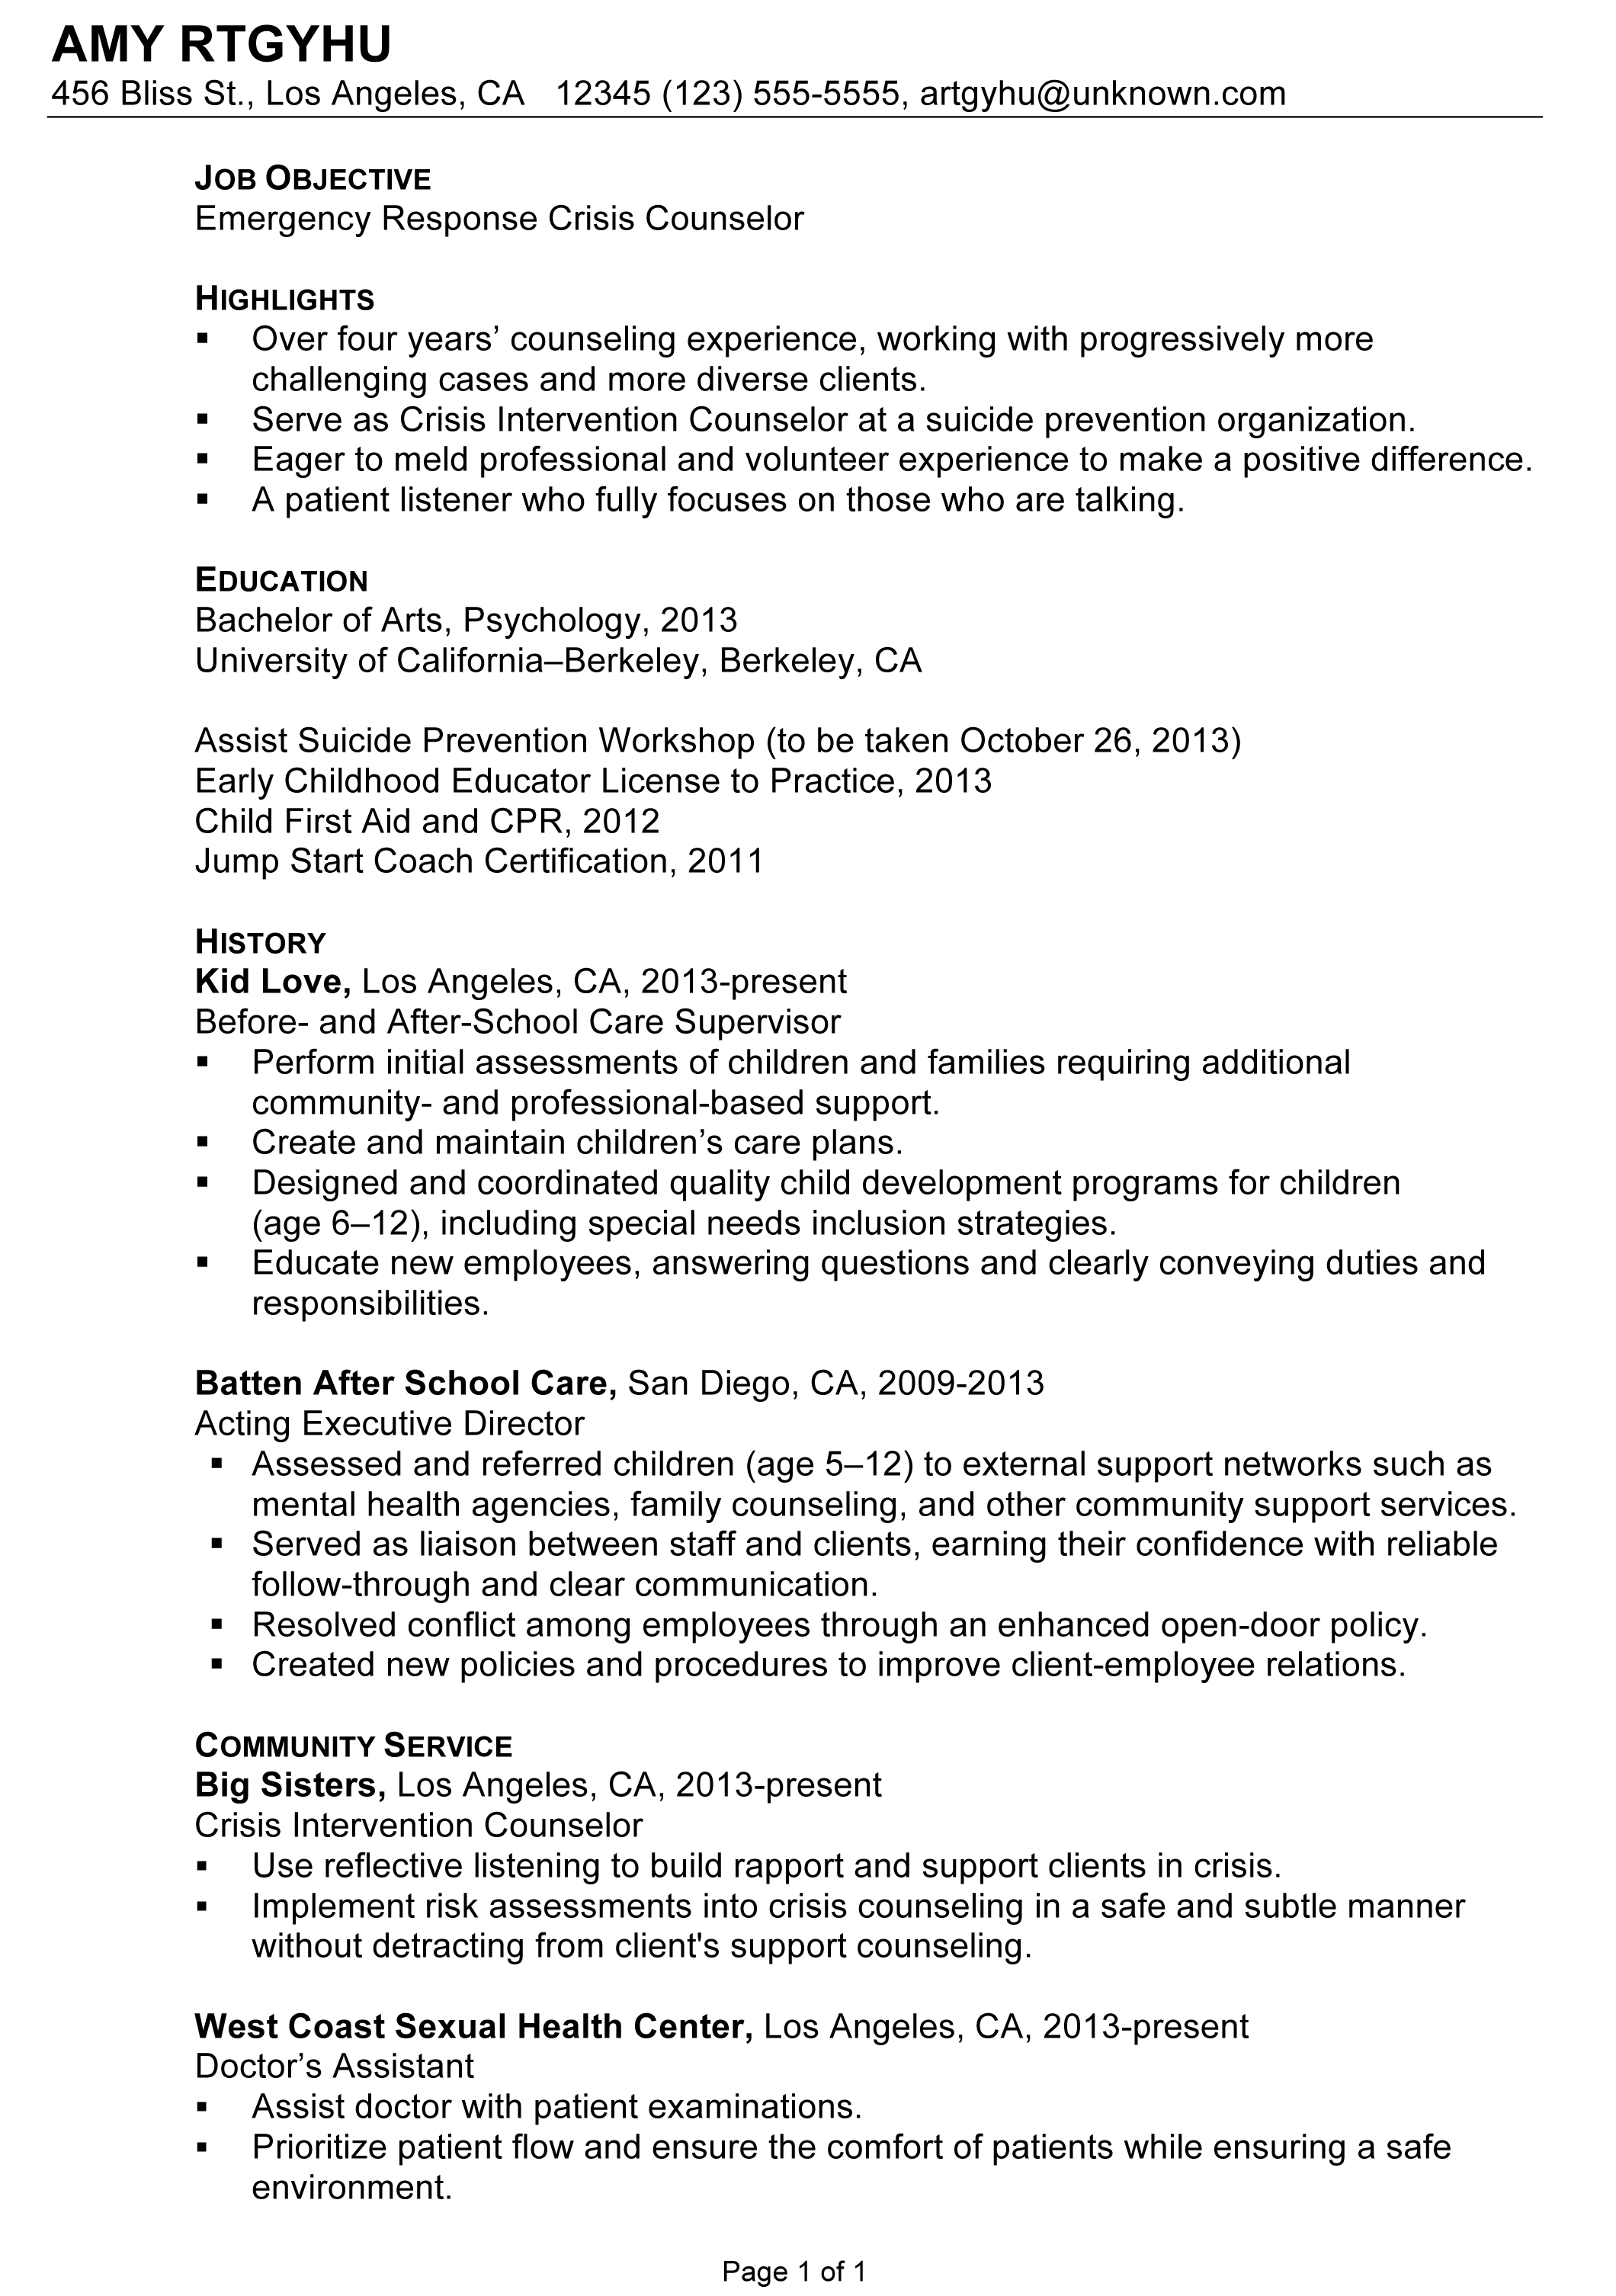 Resume Best Template HDSample Resumes Cover Letter Examples  How To Make An Outstanding Resume